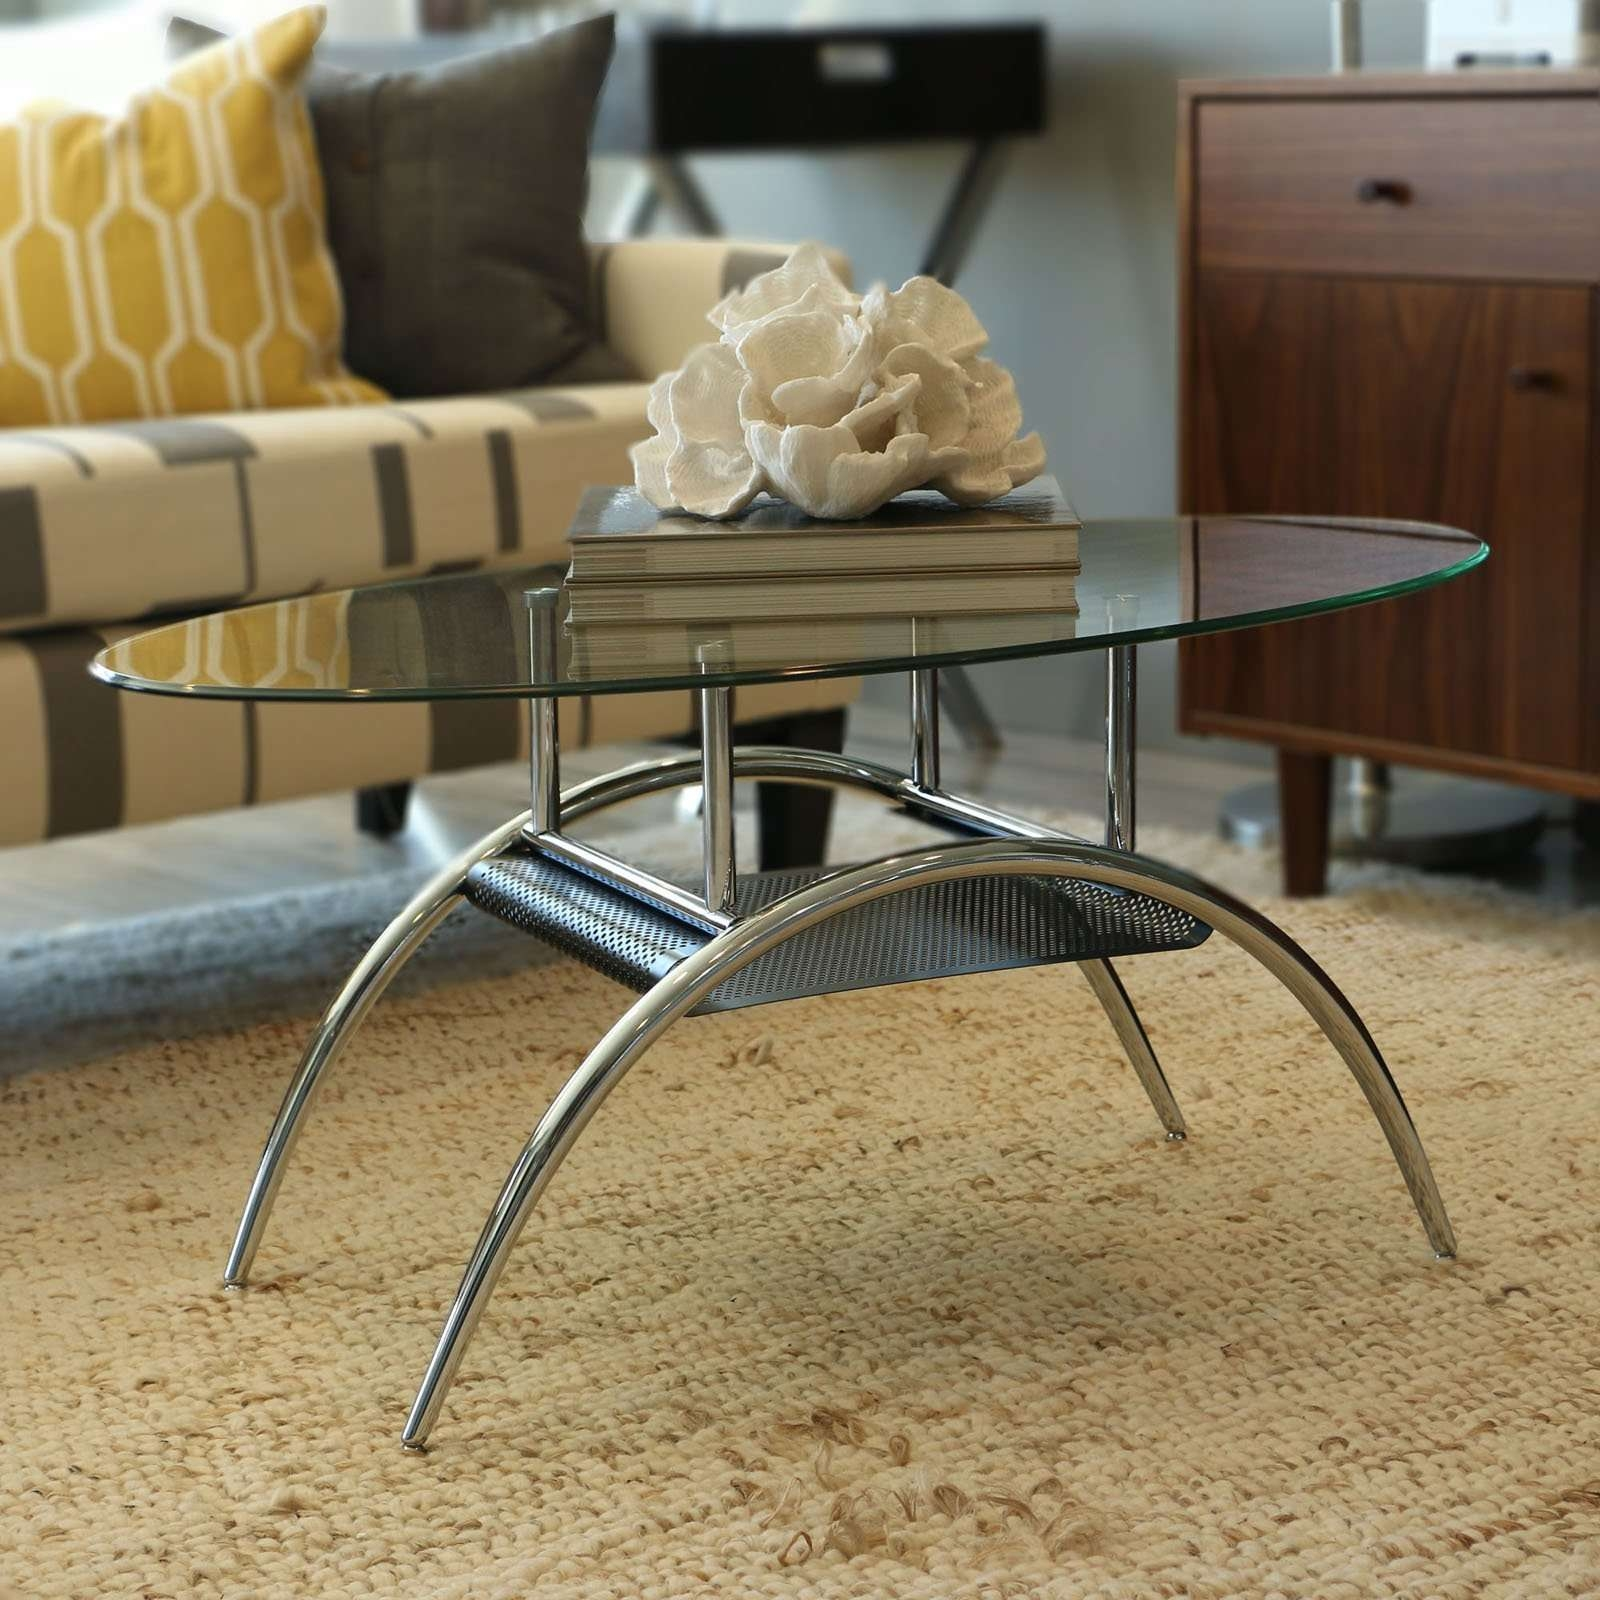 2018 Coffee Tables With Oval Shape With Regard To Walker Edison Oval Glass Coffee Table With Black Mesh Shelf (View 3 of 20)